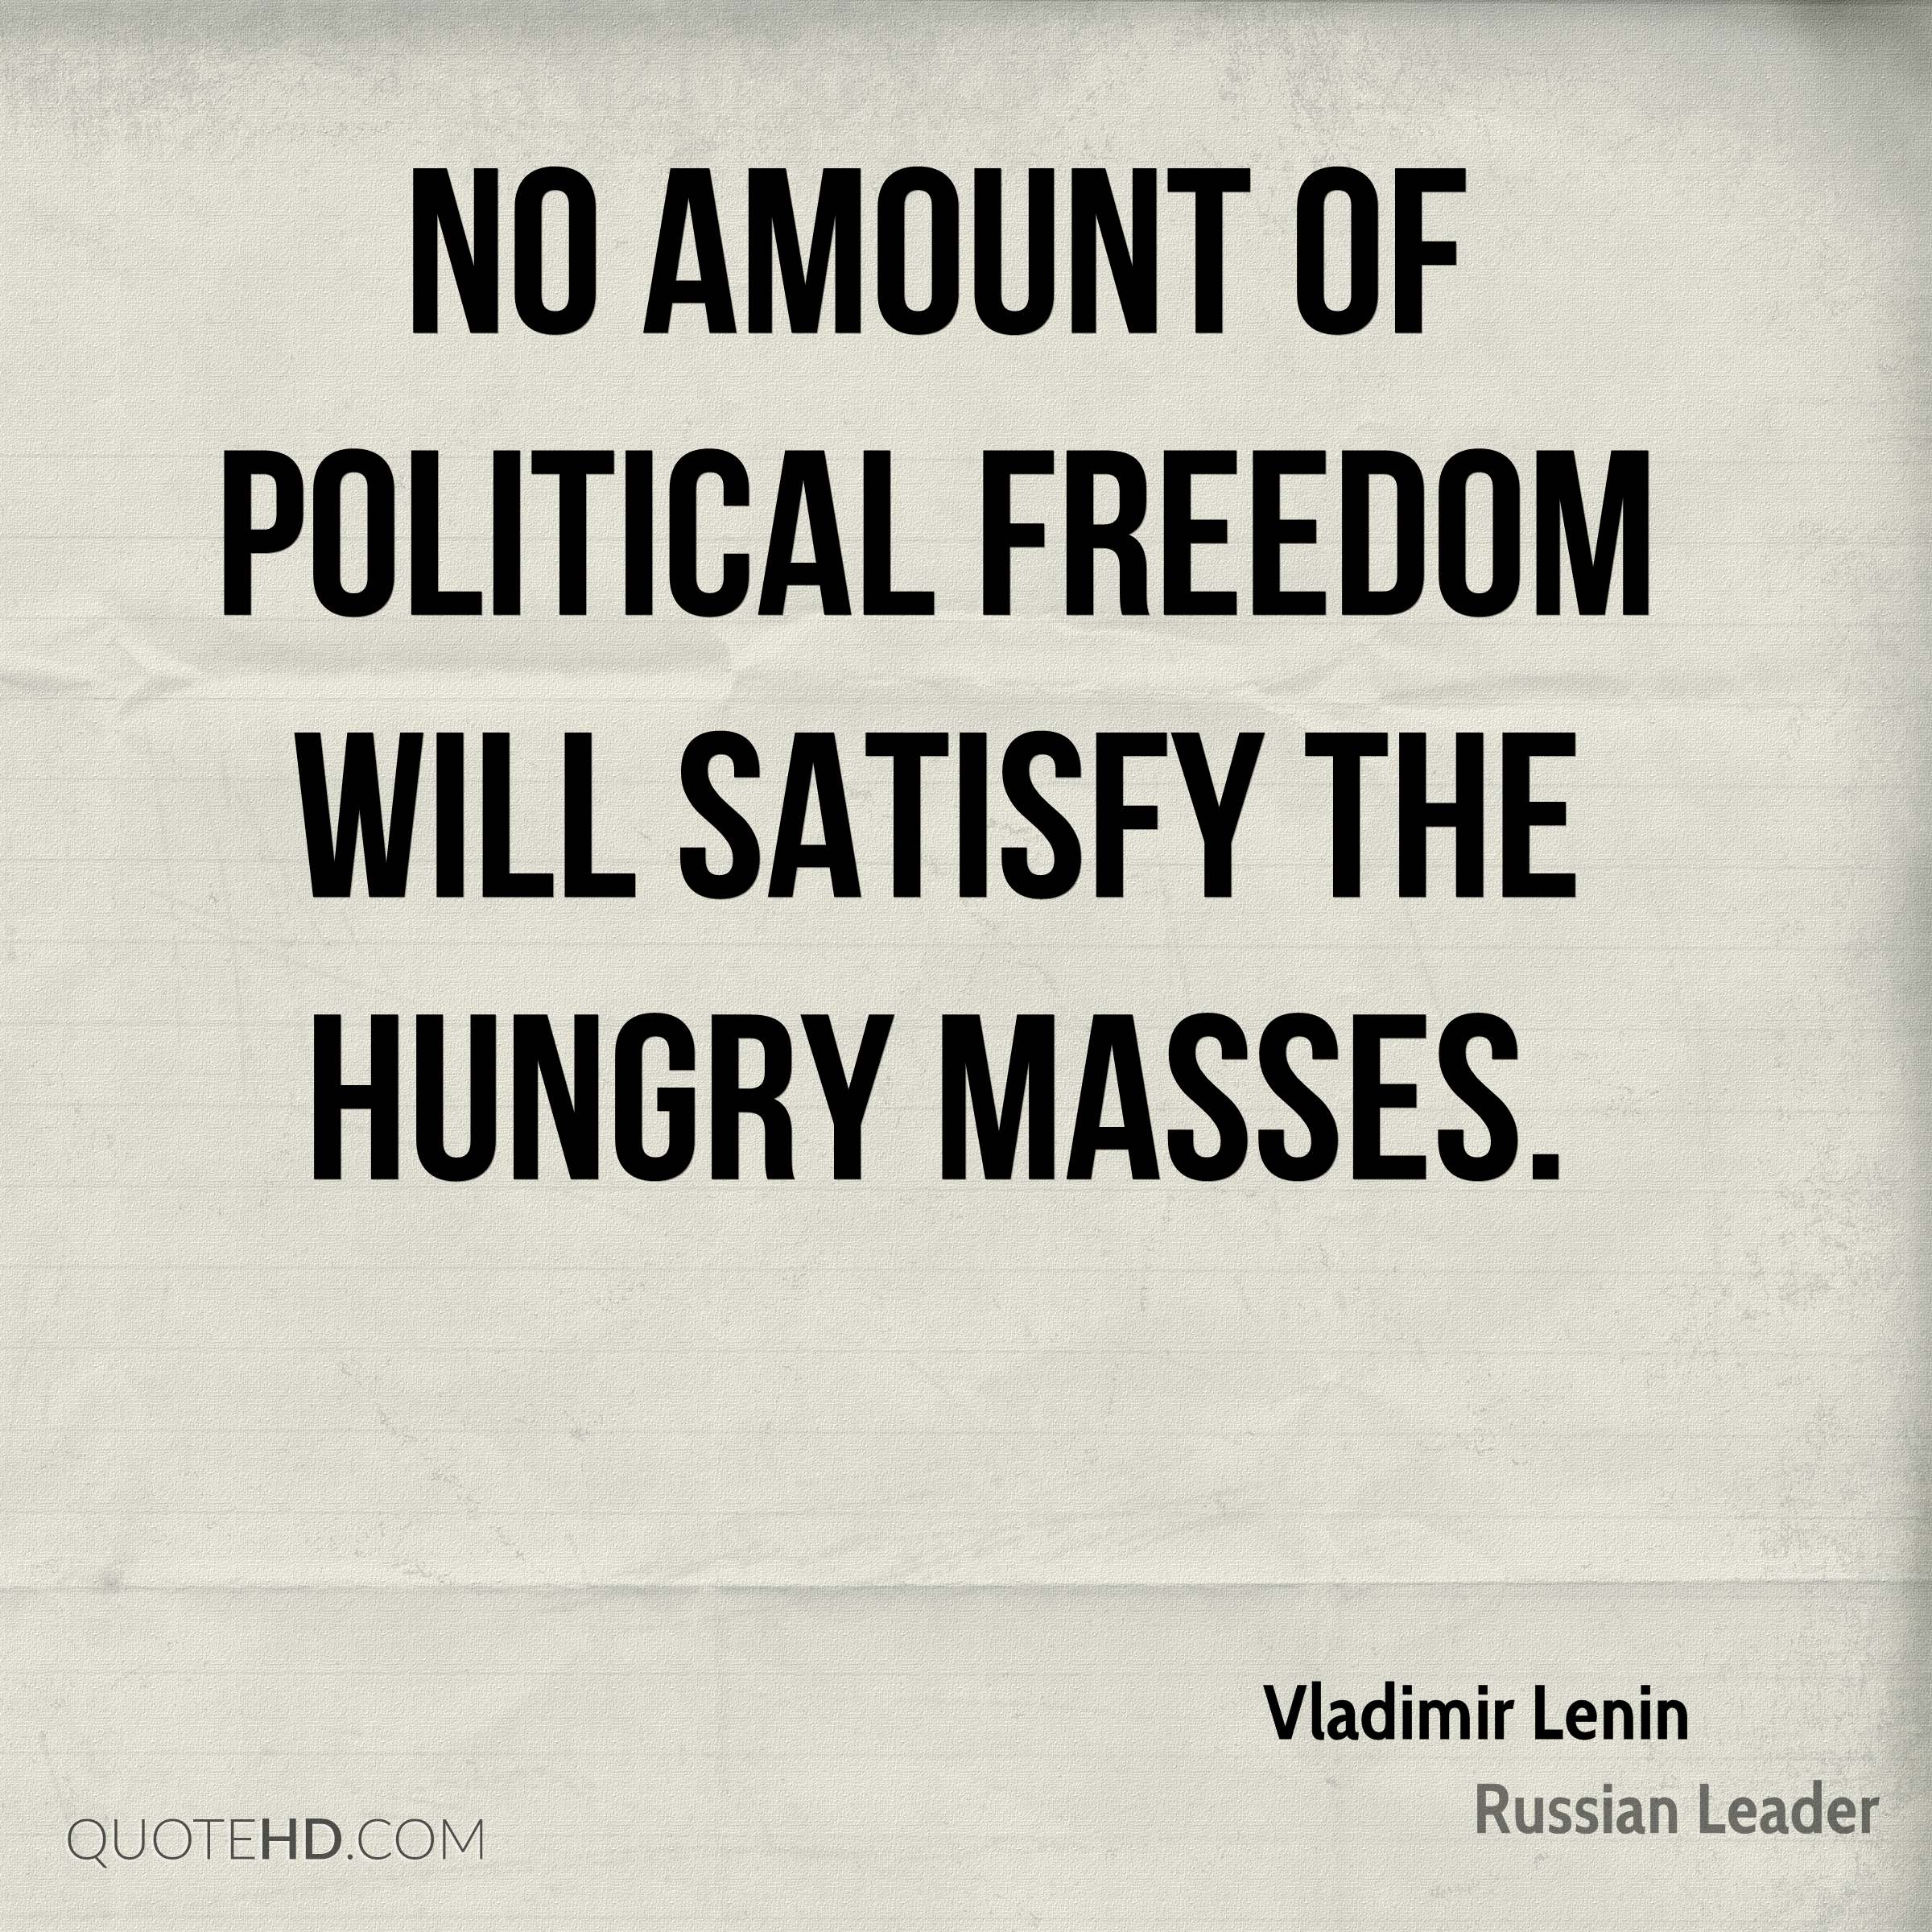 No amount of political freedom will satisfy the hungry masses.